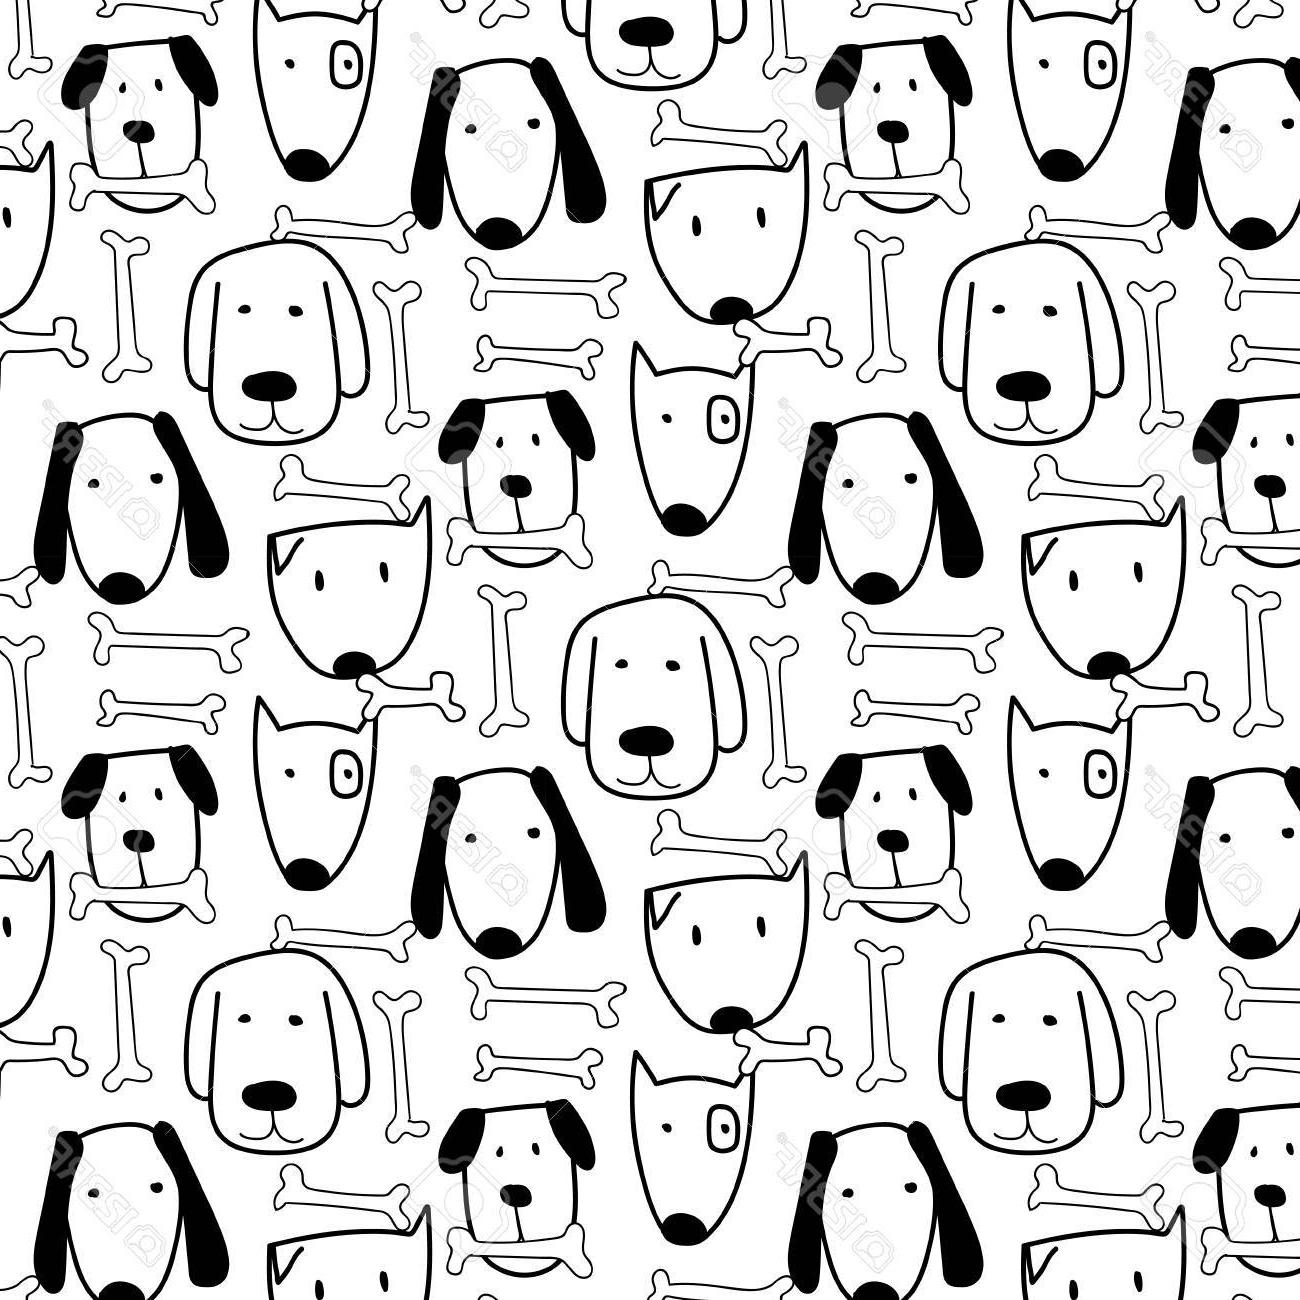 1300x1300 Best Free Hand Drawn Cute Dog And Bone Vector Pattern Doodle Art